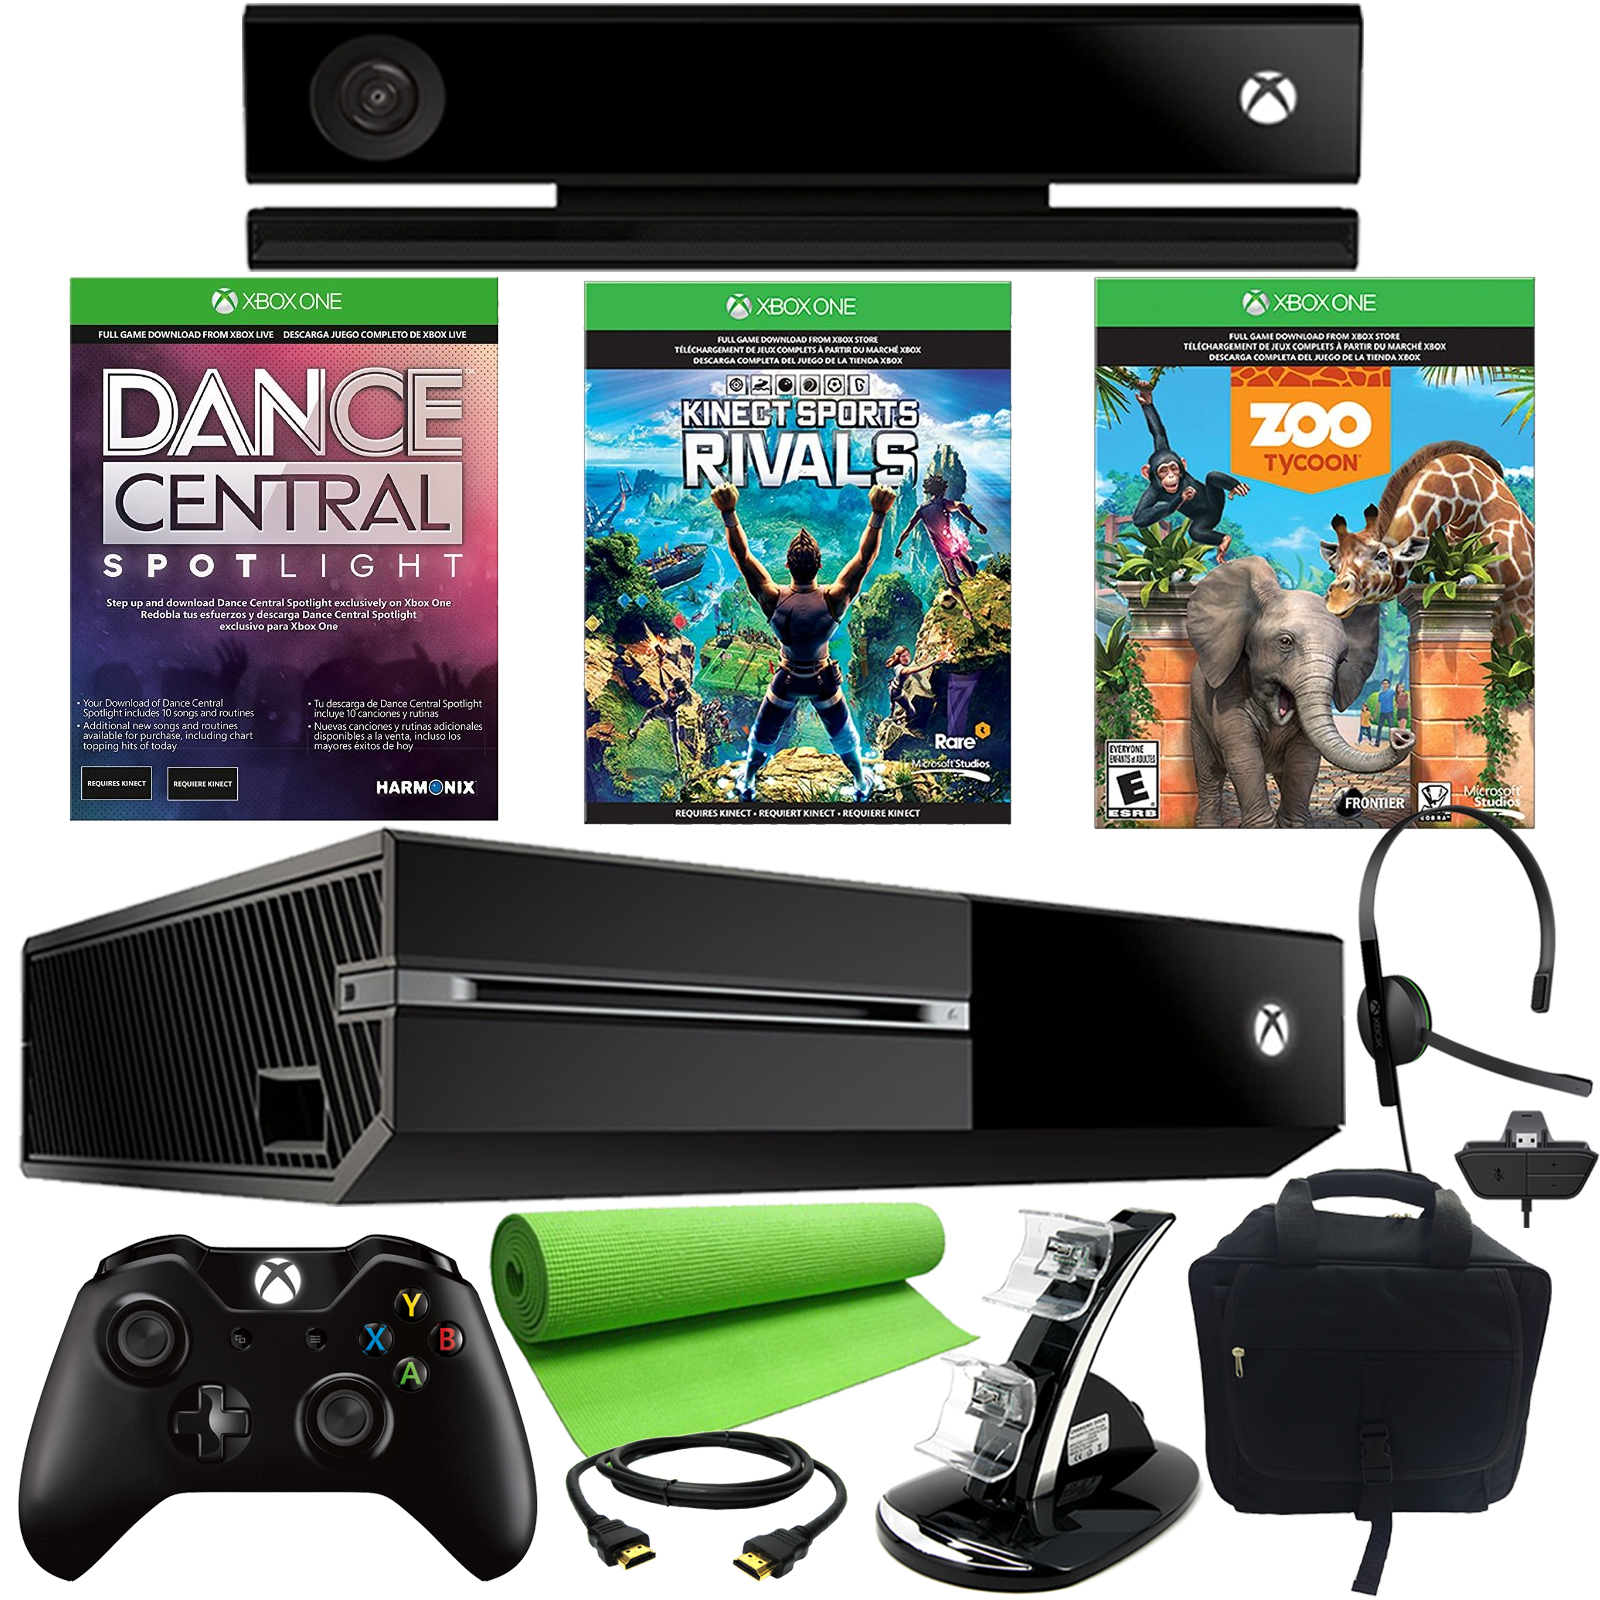 Microsoft Xbox One 500GB 3 Game Kinect Holiday Bundle With Accessories Green TVs